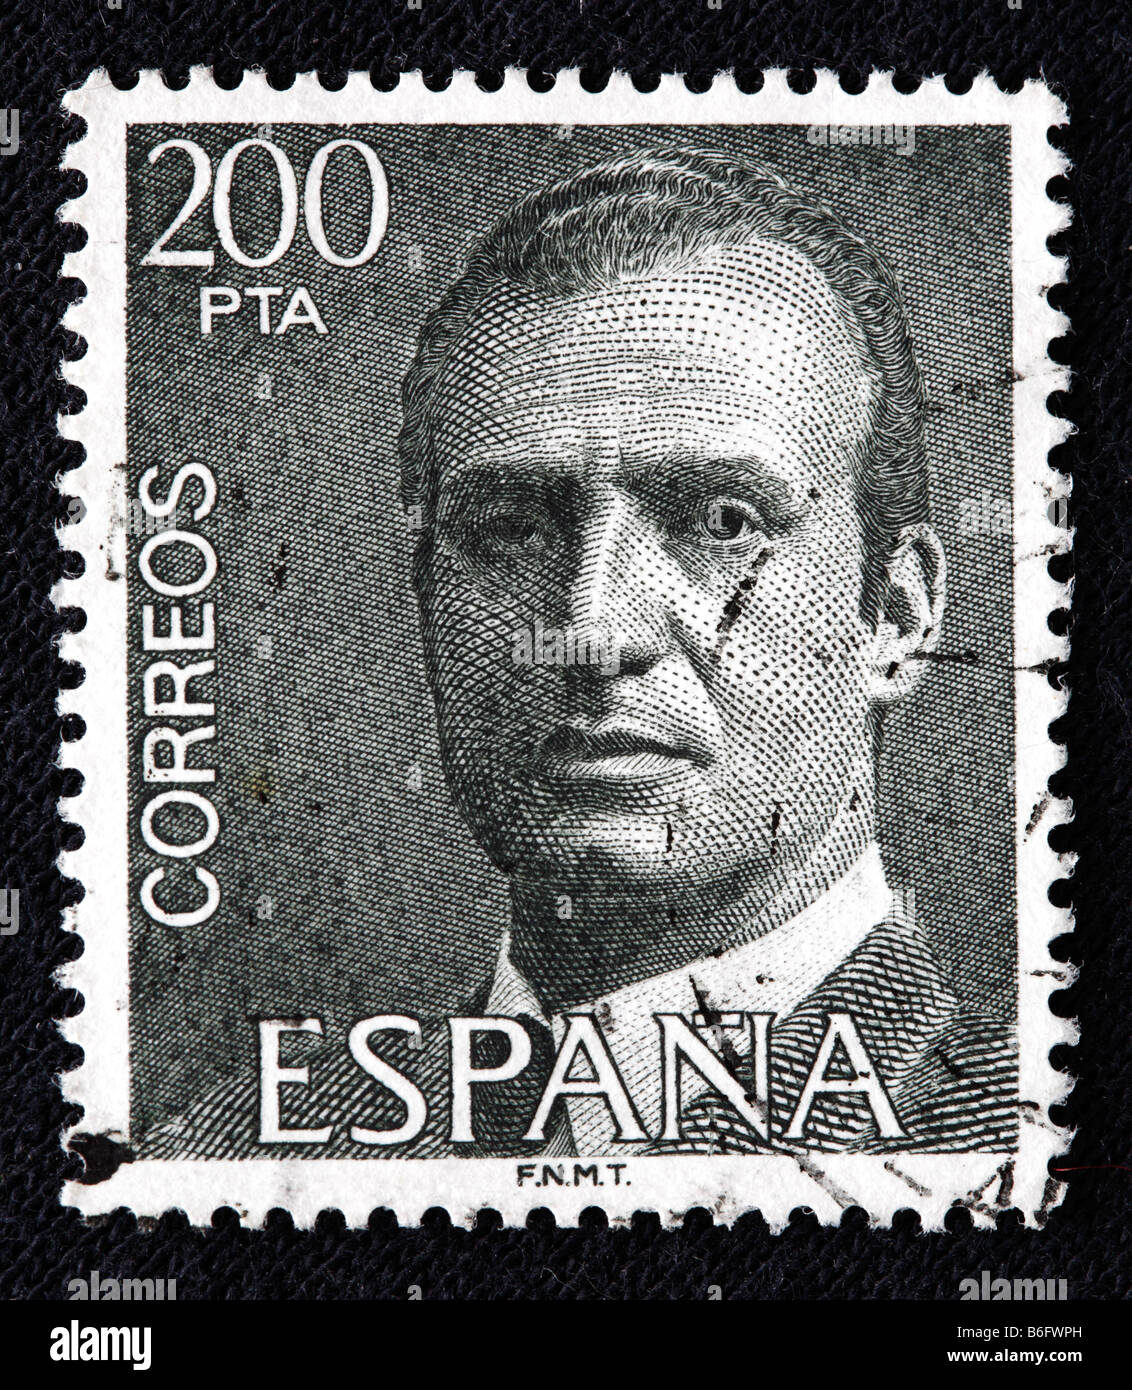 King Juan Carlos I Of Spain 1975 To Present Postage Stamp